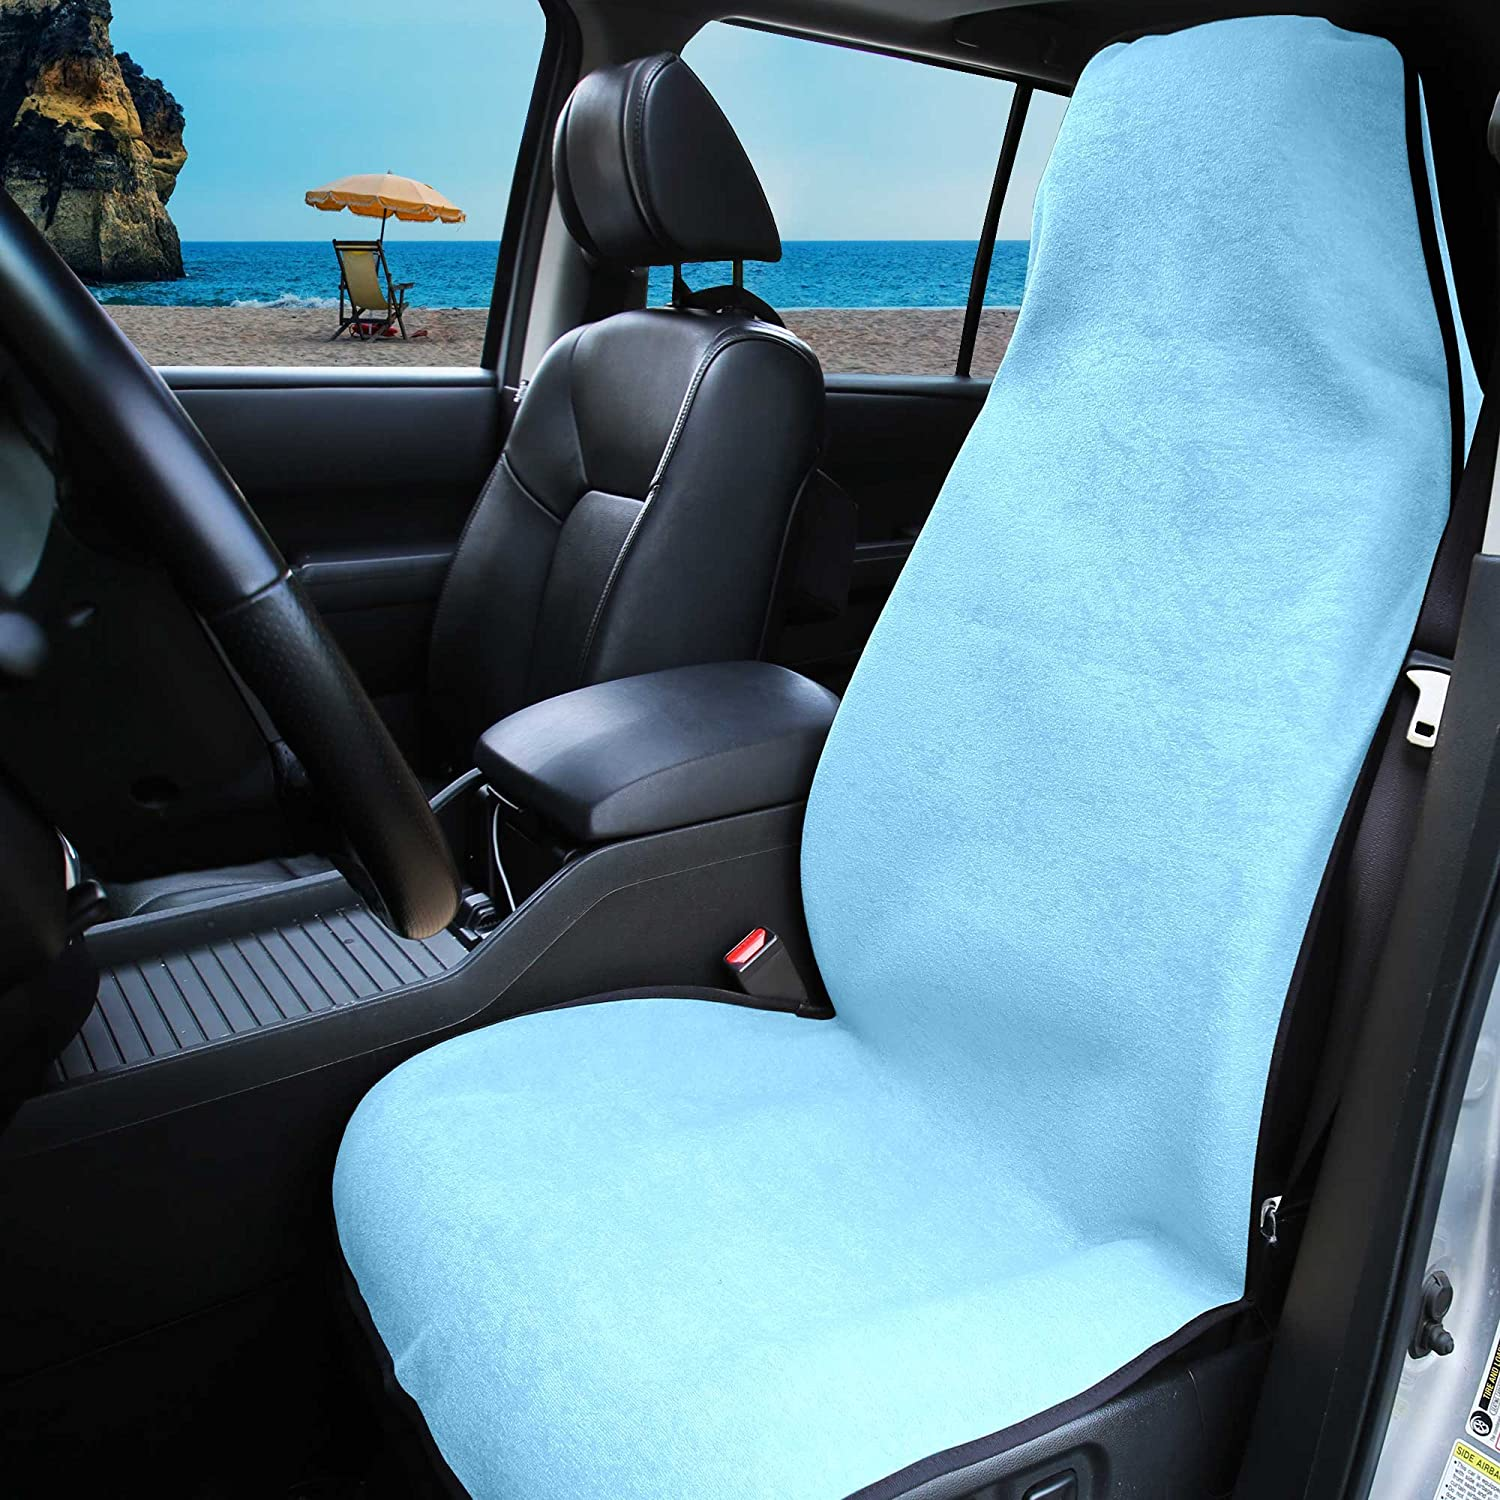 FH Group FH1006 Multifunctional Beach, Fitness Towel Car Seat Cover (Light Blue) One Cover – Universal Fit for Cars, Trucks & SUVs